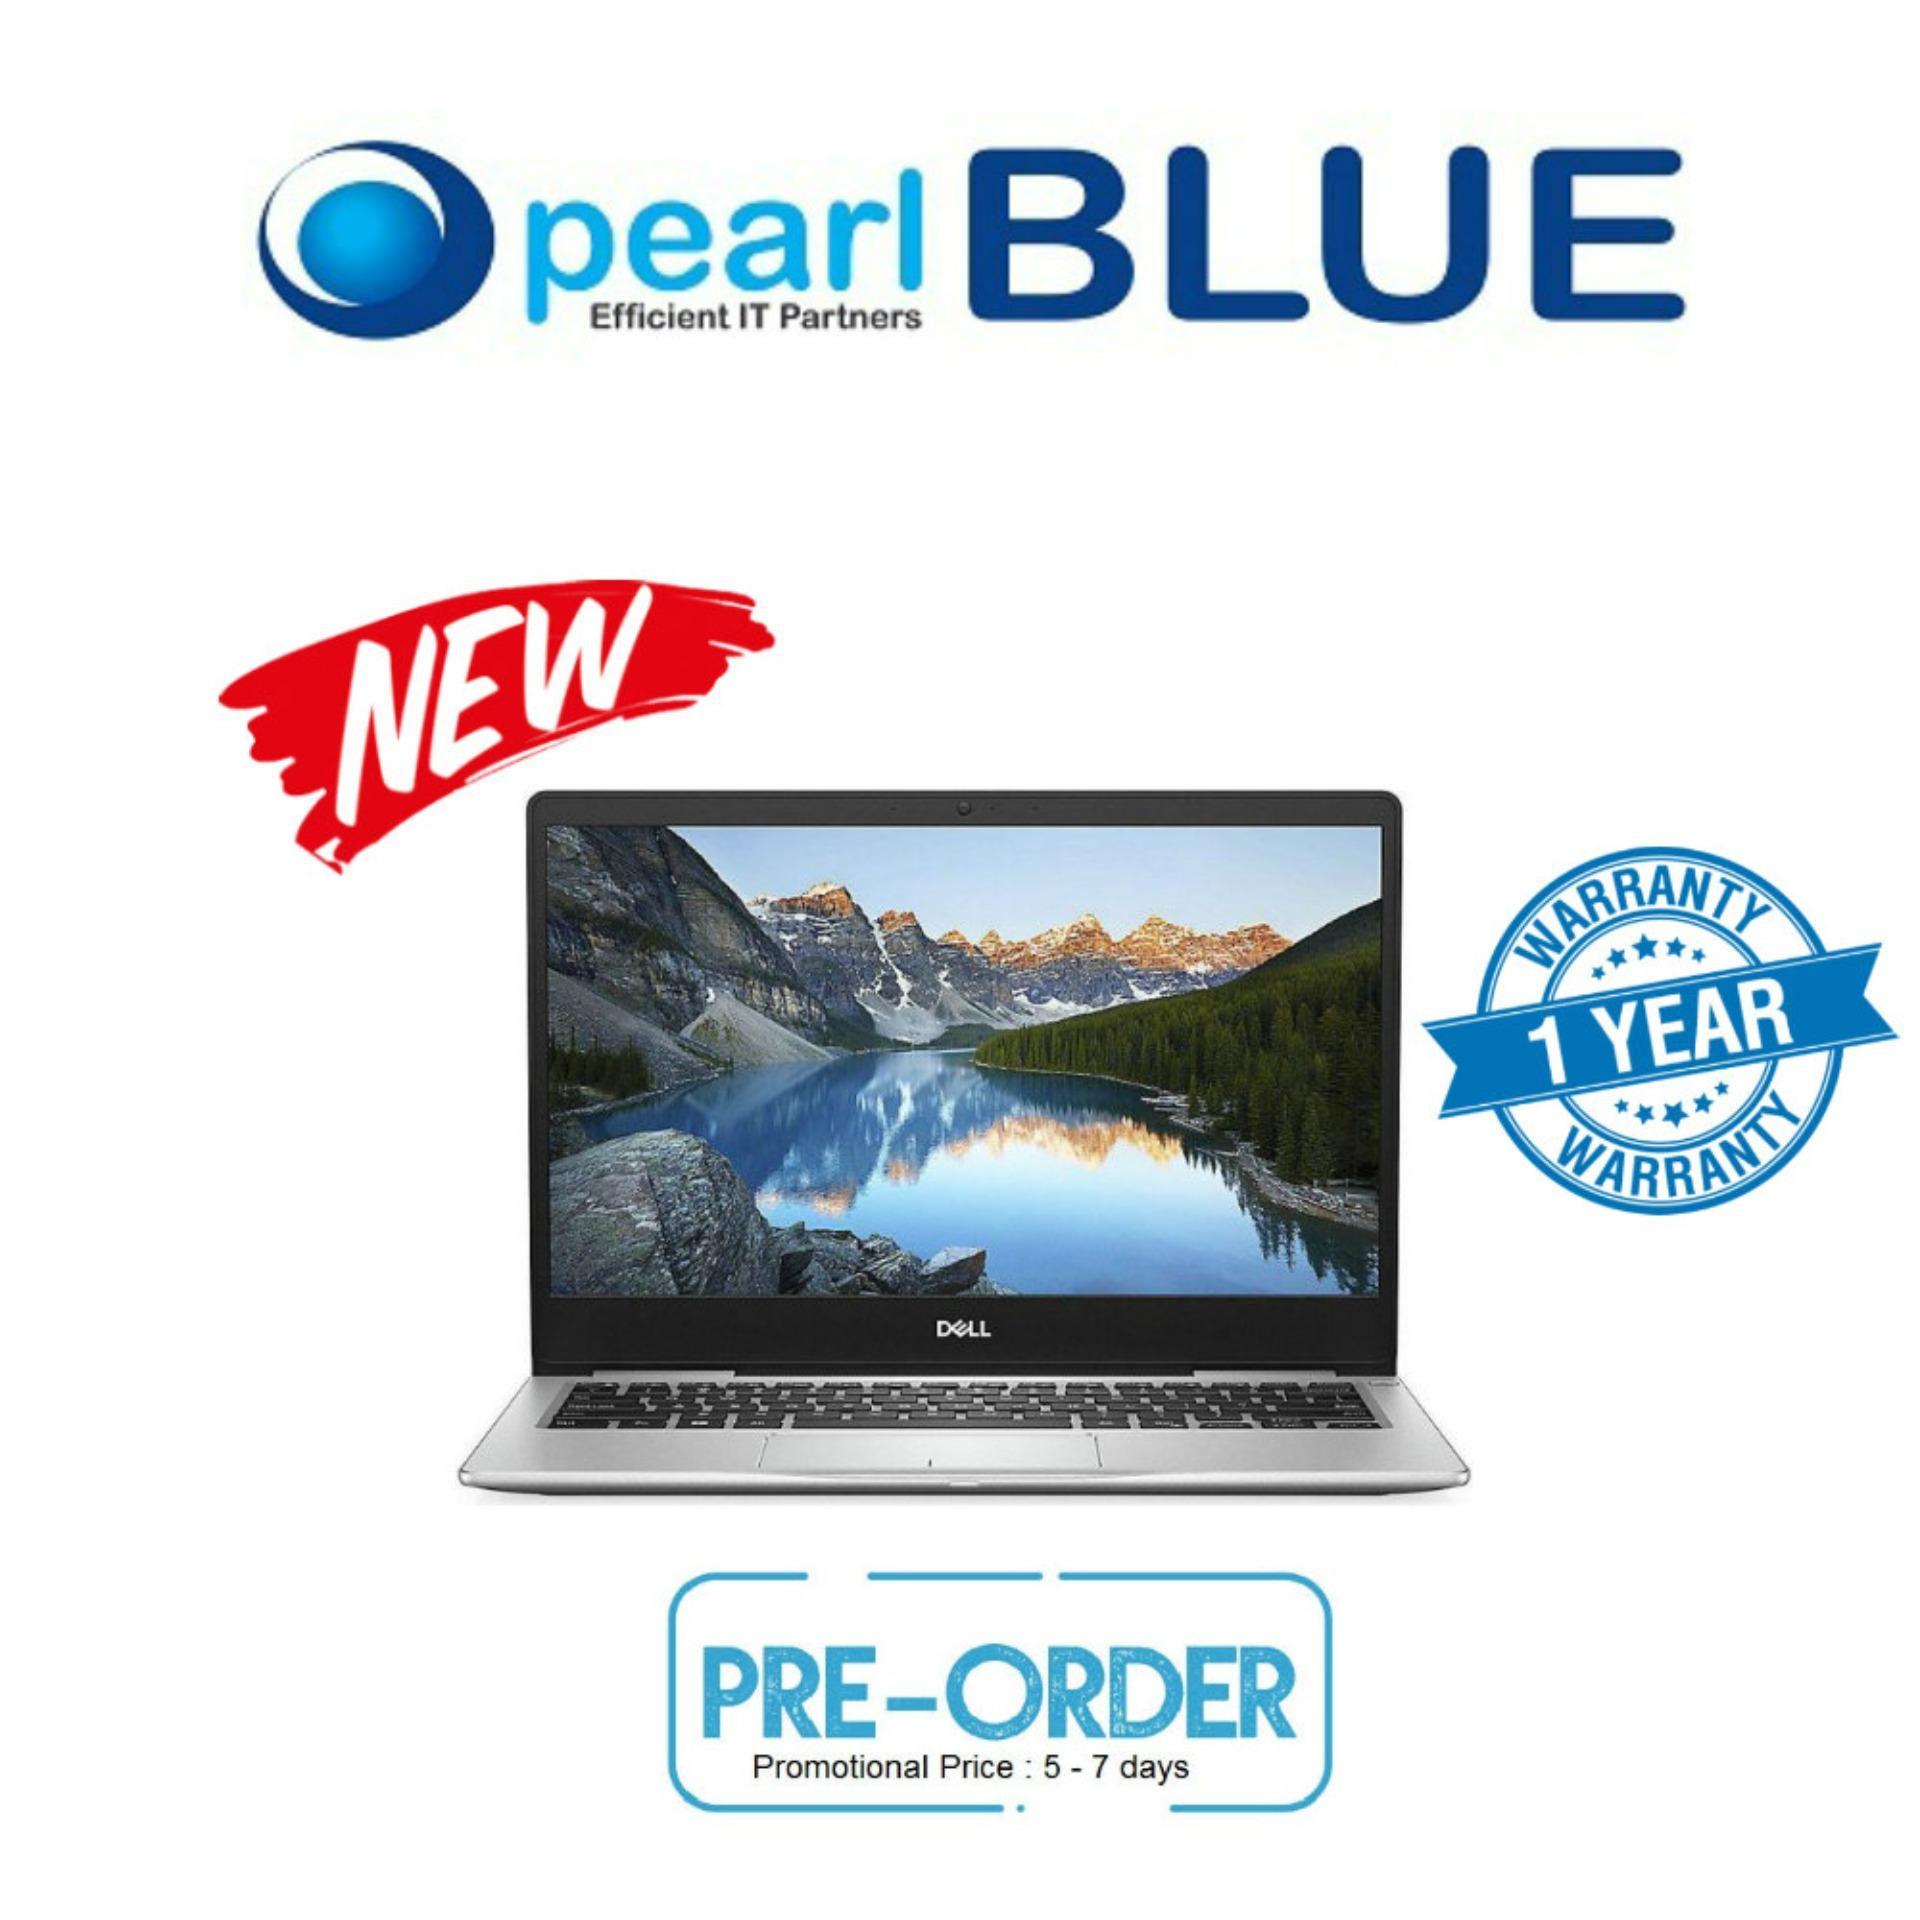 Dell Inspiron 13 7380 -i7-8565 8GB 256SSD  With narrow borders offering expansive onscreen views